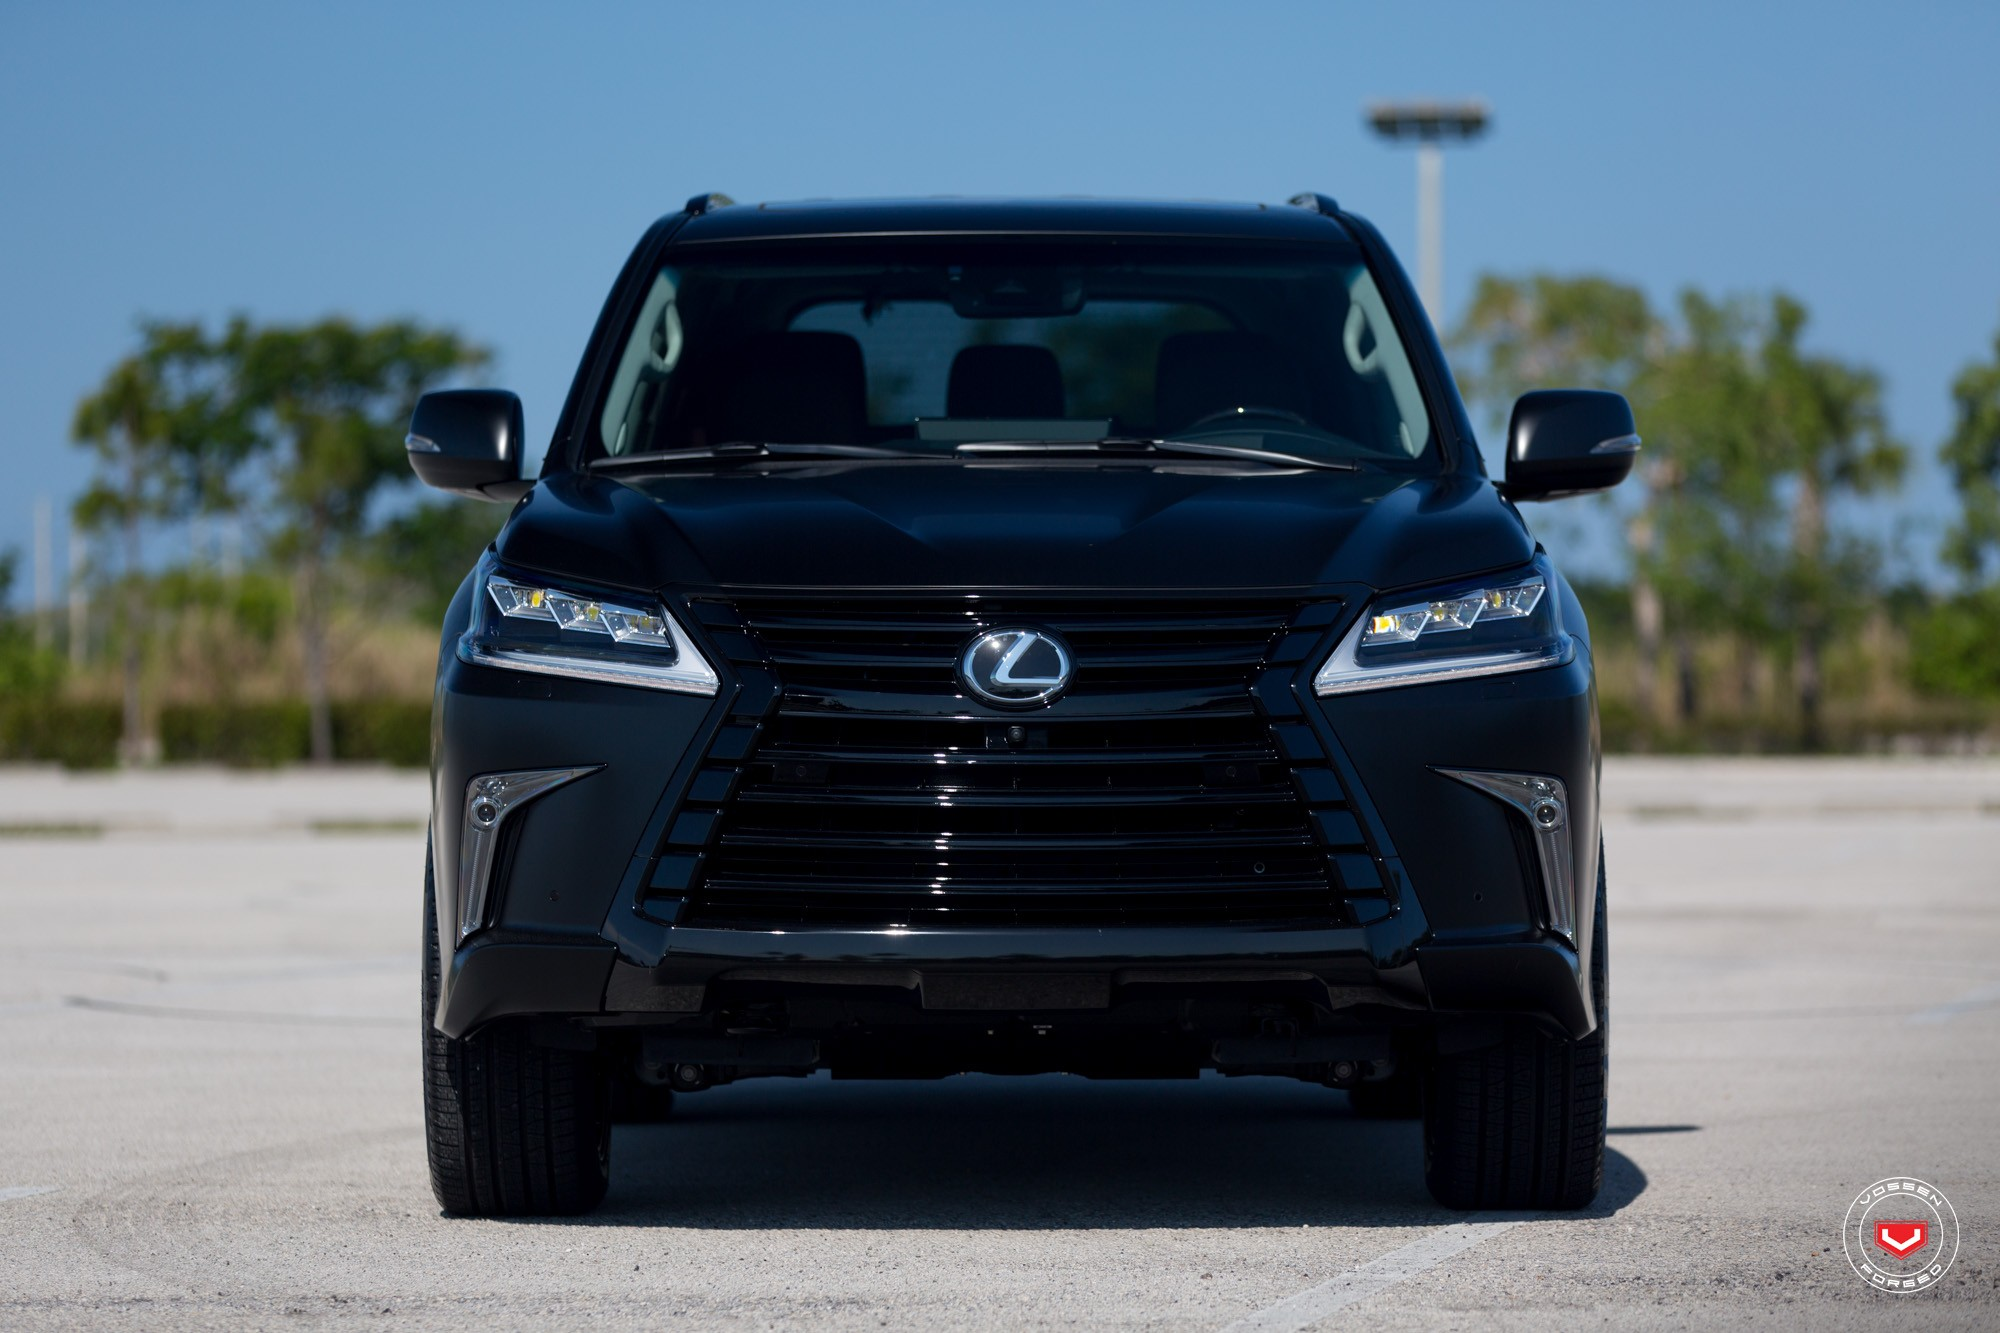 Lexus Lx 570 Gets Murdered Out Look And Vossen Wheels Autoevolution